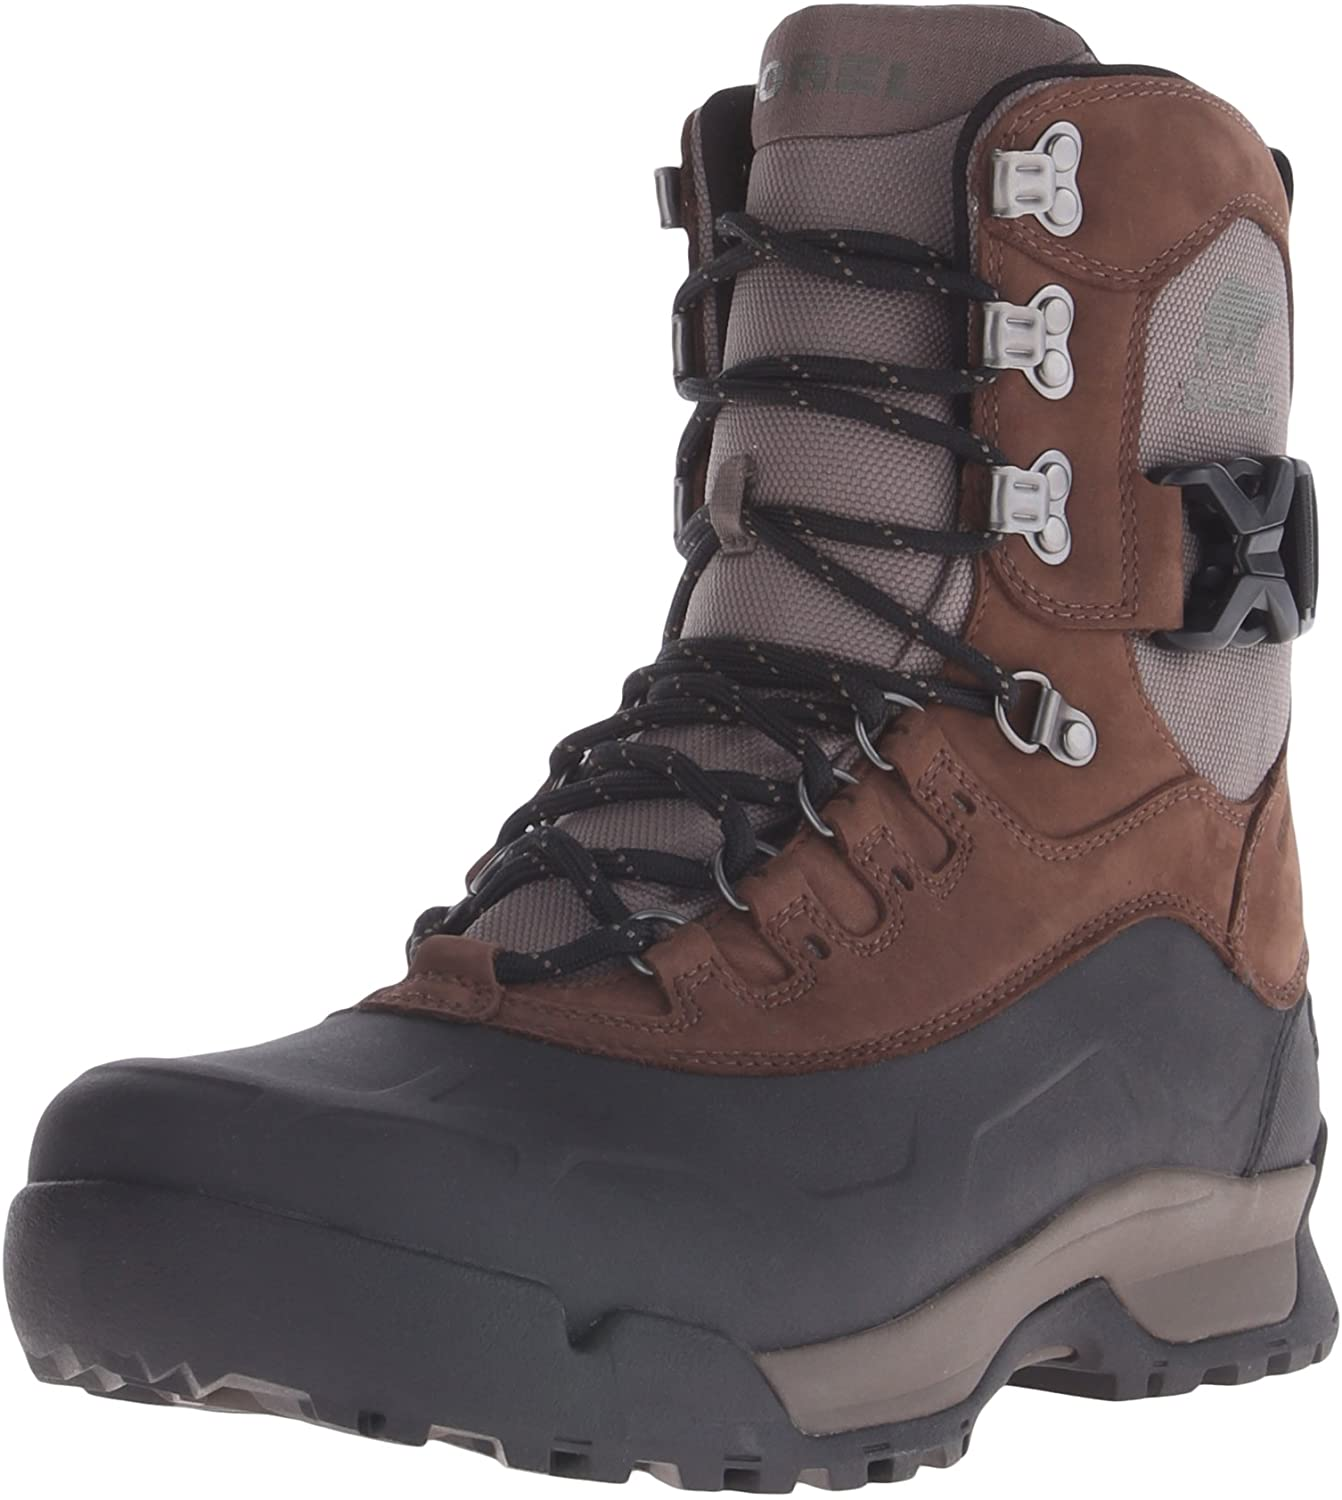 Sorel Mens Paxson Tall Waterproof Snow Boot